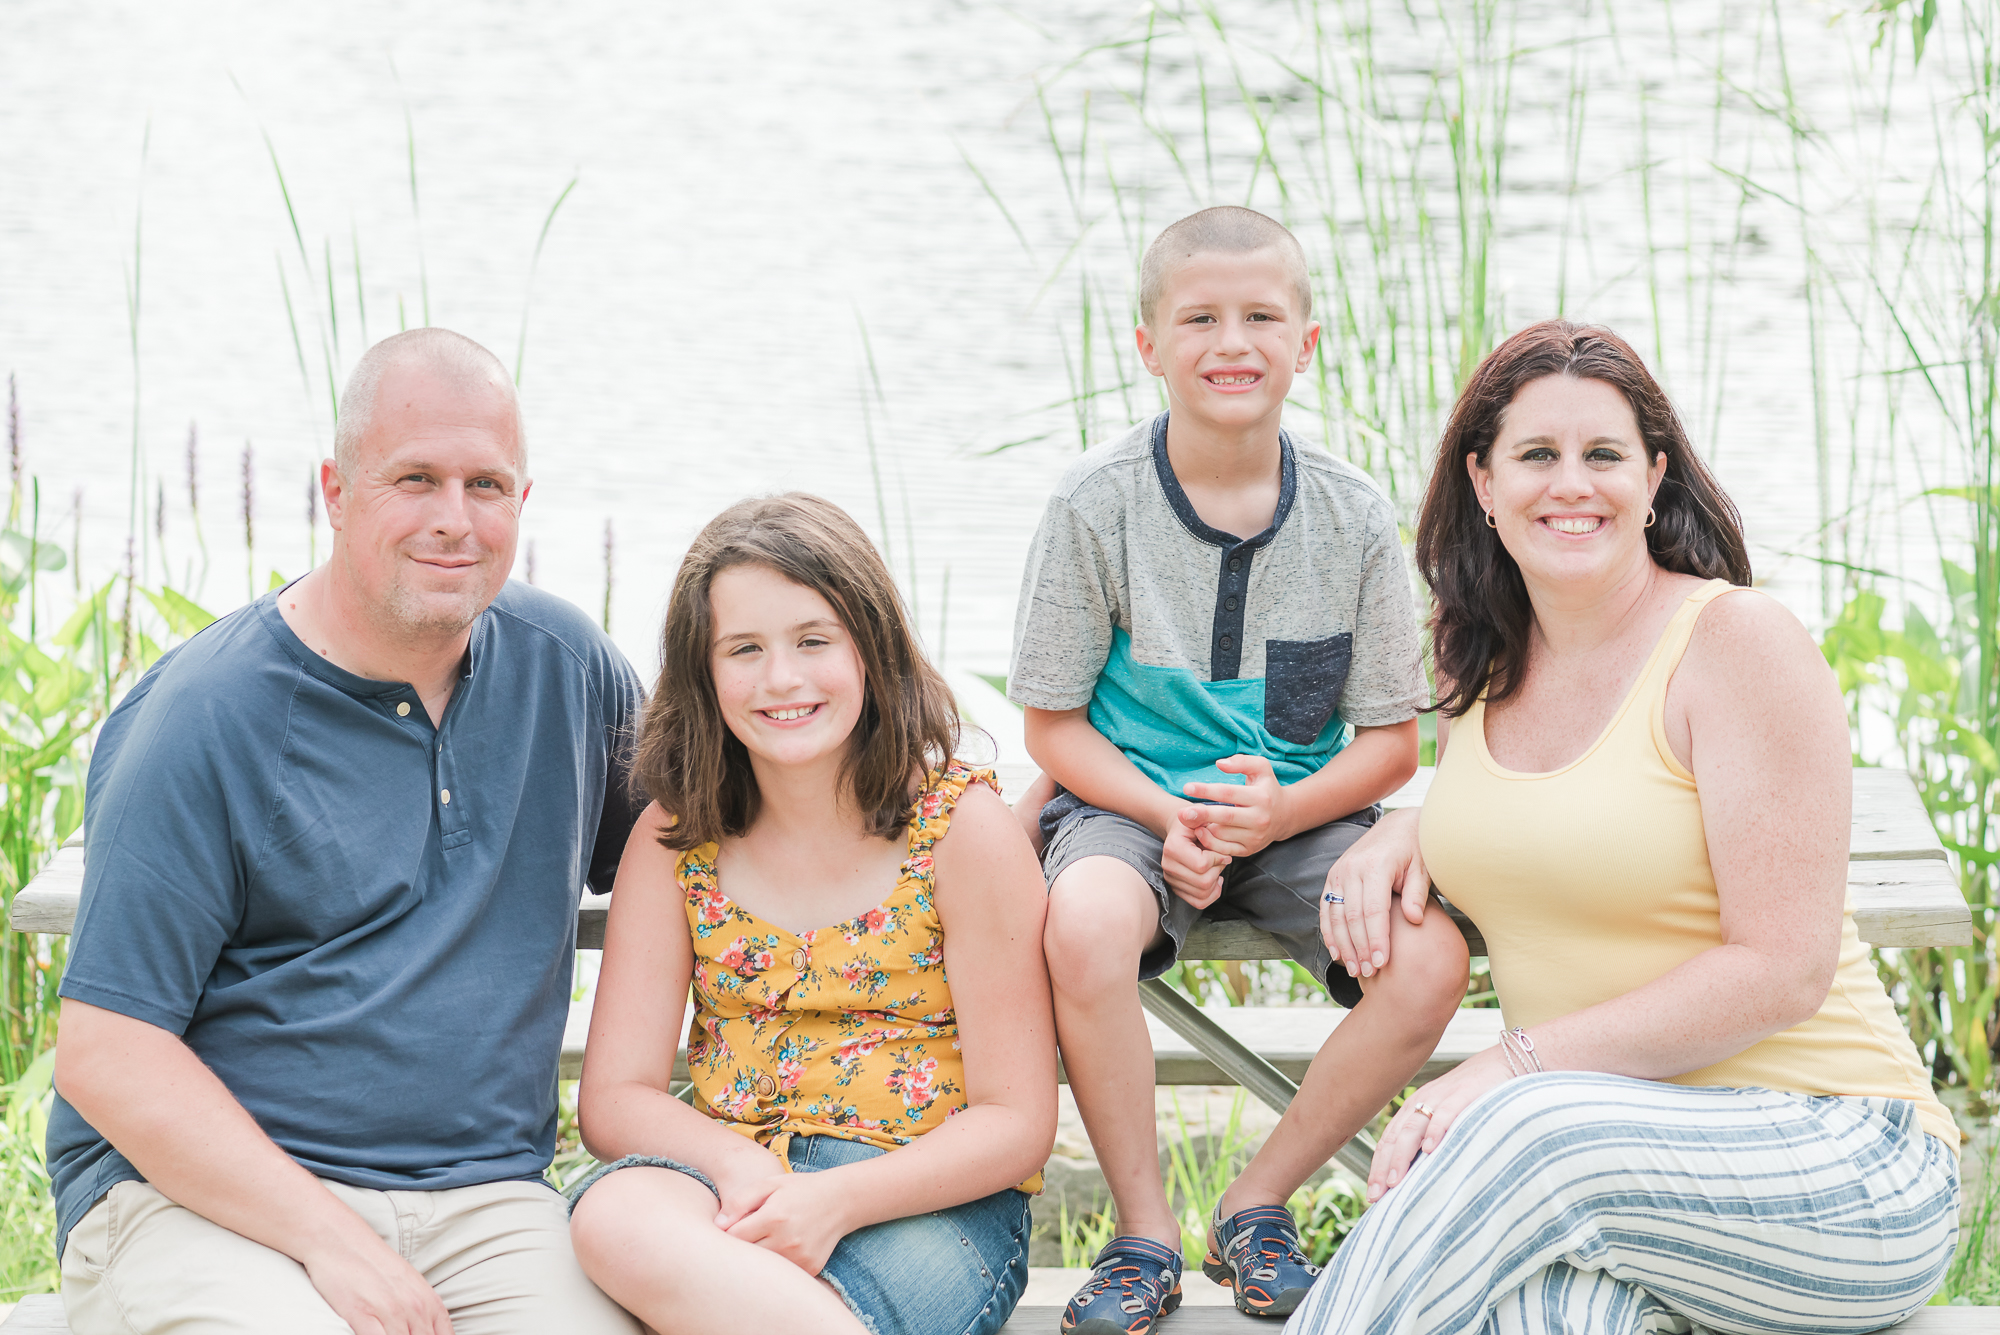 Summer_B Family Portraits Session_Mugrage Park_Medina_Ohio-35.jpg